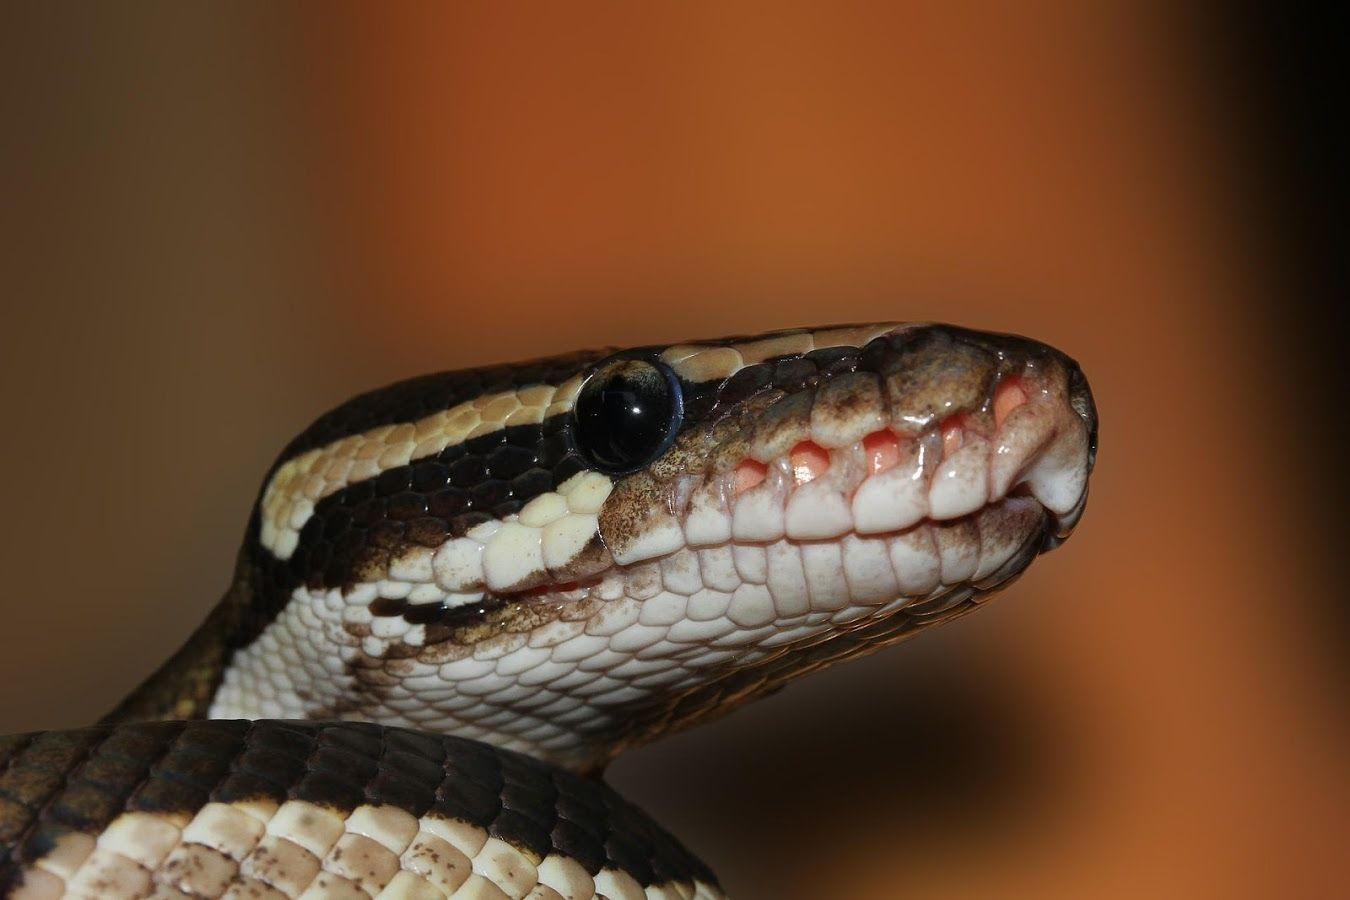 Boa Constrictor Wallpapers HD – Android Apps on Google Play